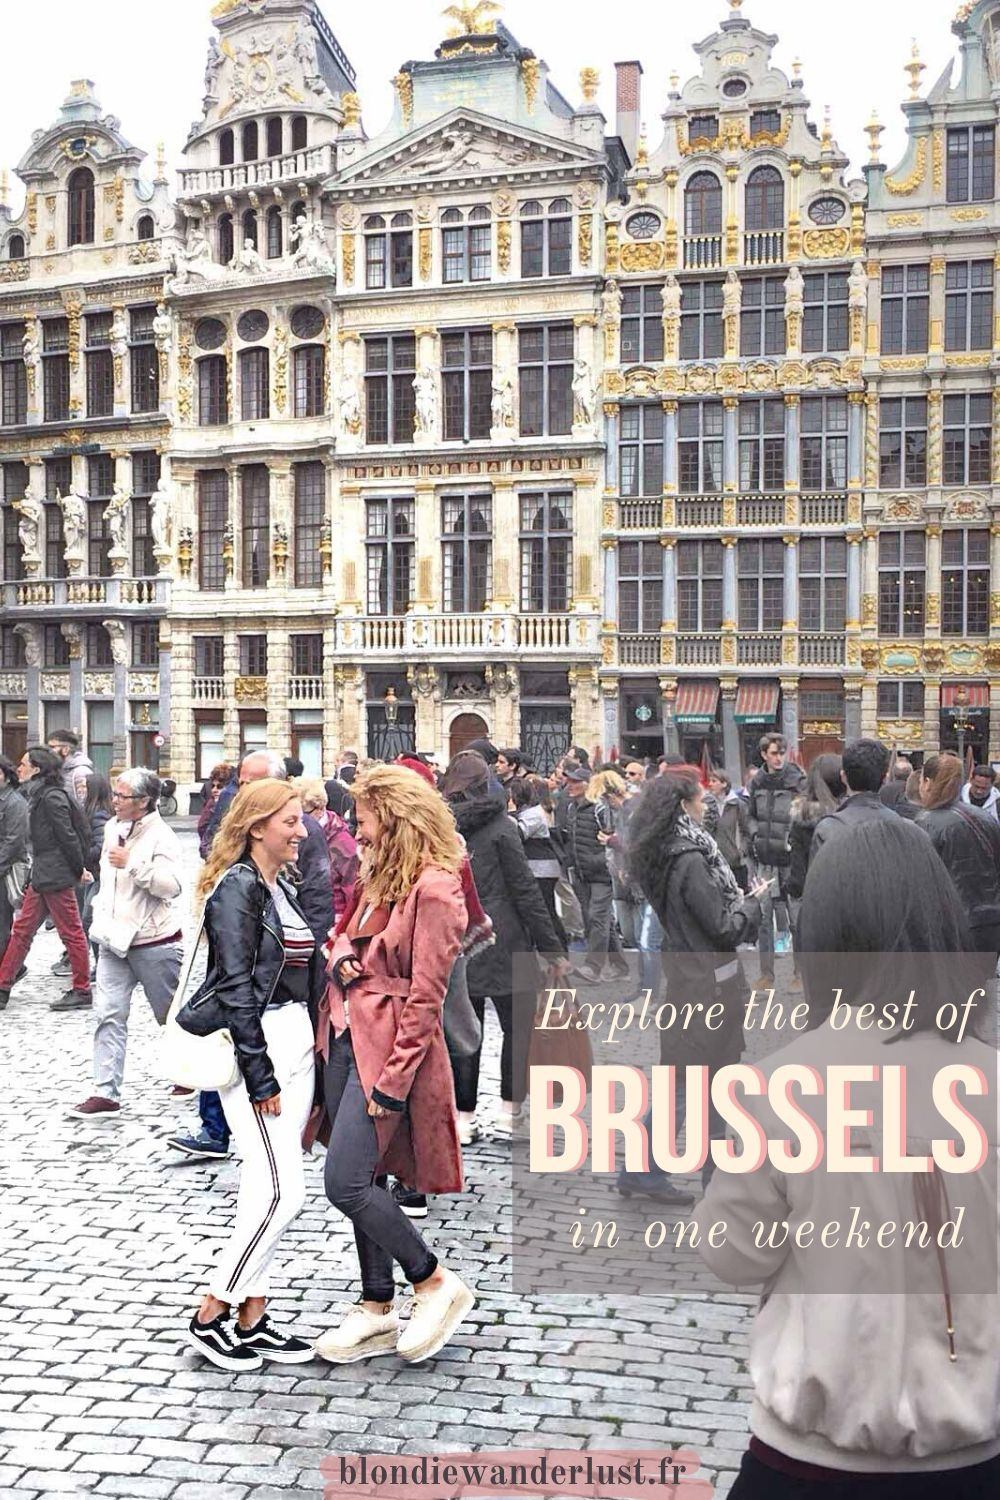 Spend a weekend in Brussels, itinerary